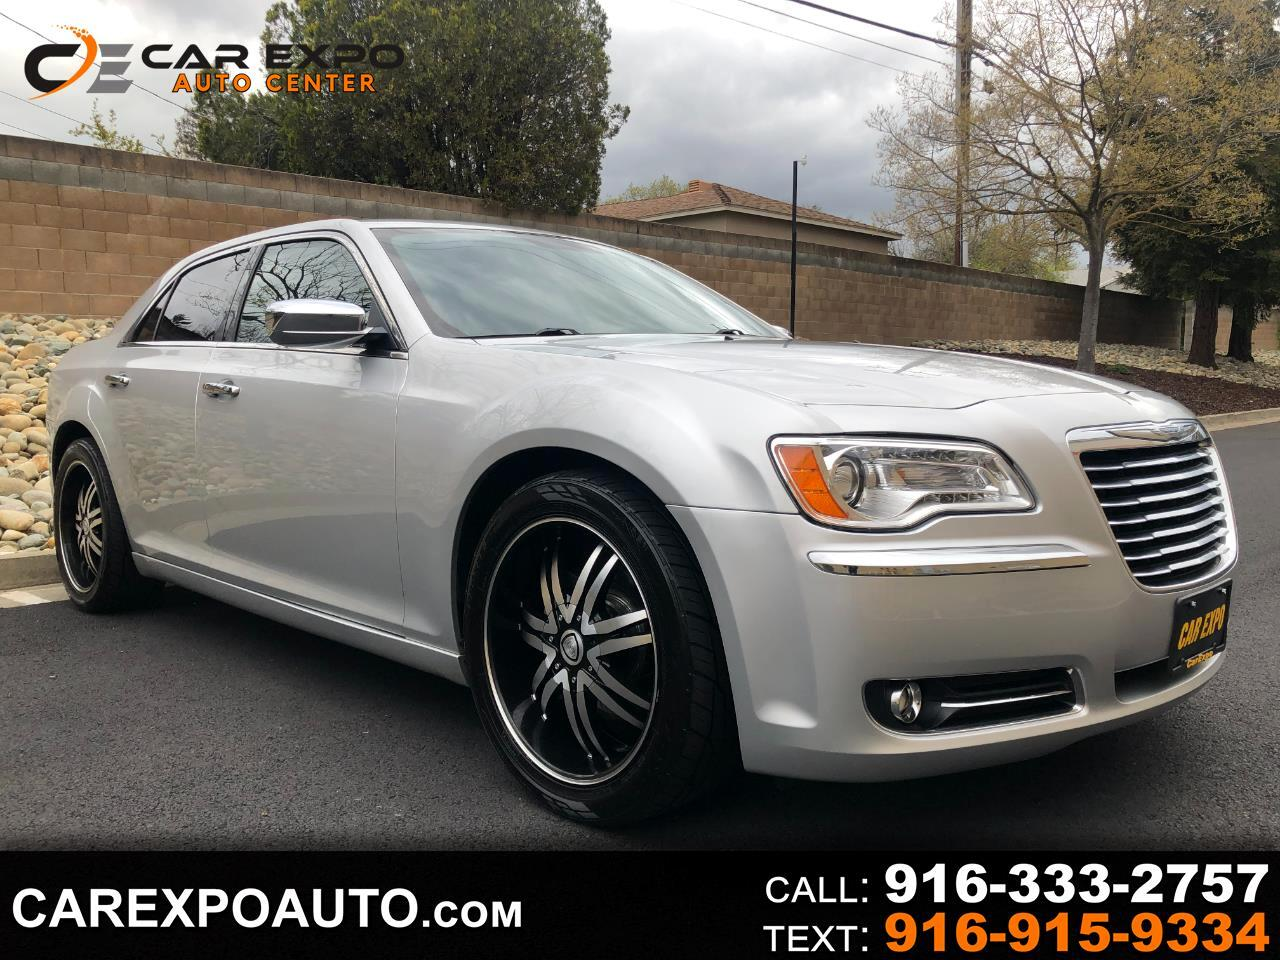 Chrysler 300 4dr Sdn V6 Limited RWD 2012